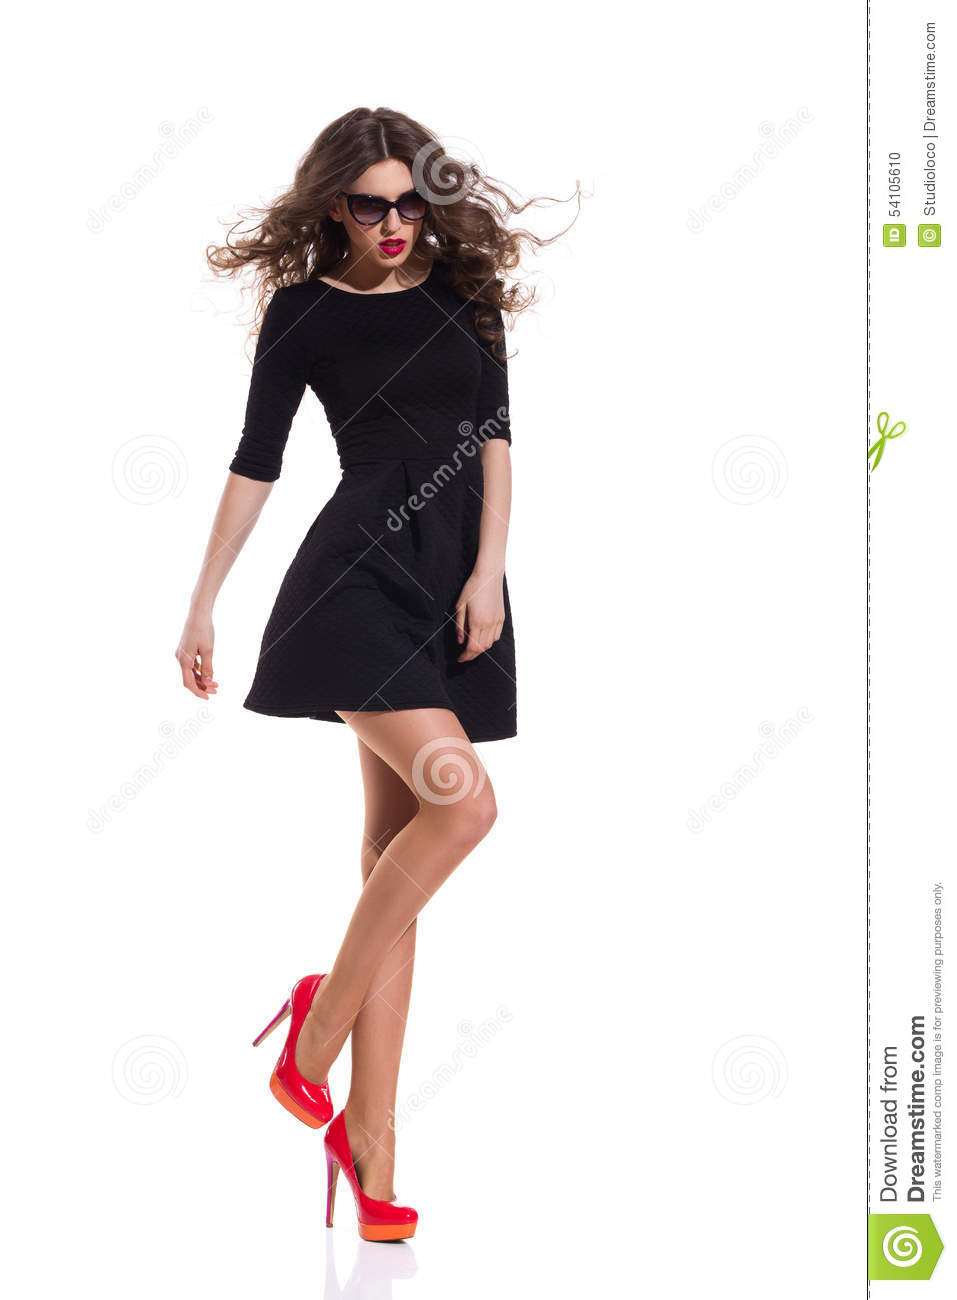 3901cb743d2d Beautiful woman in sunglasses wearing black mini dress and red high heels  standing on one leg. Full length studio shot isolated on white.